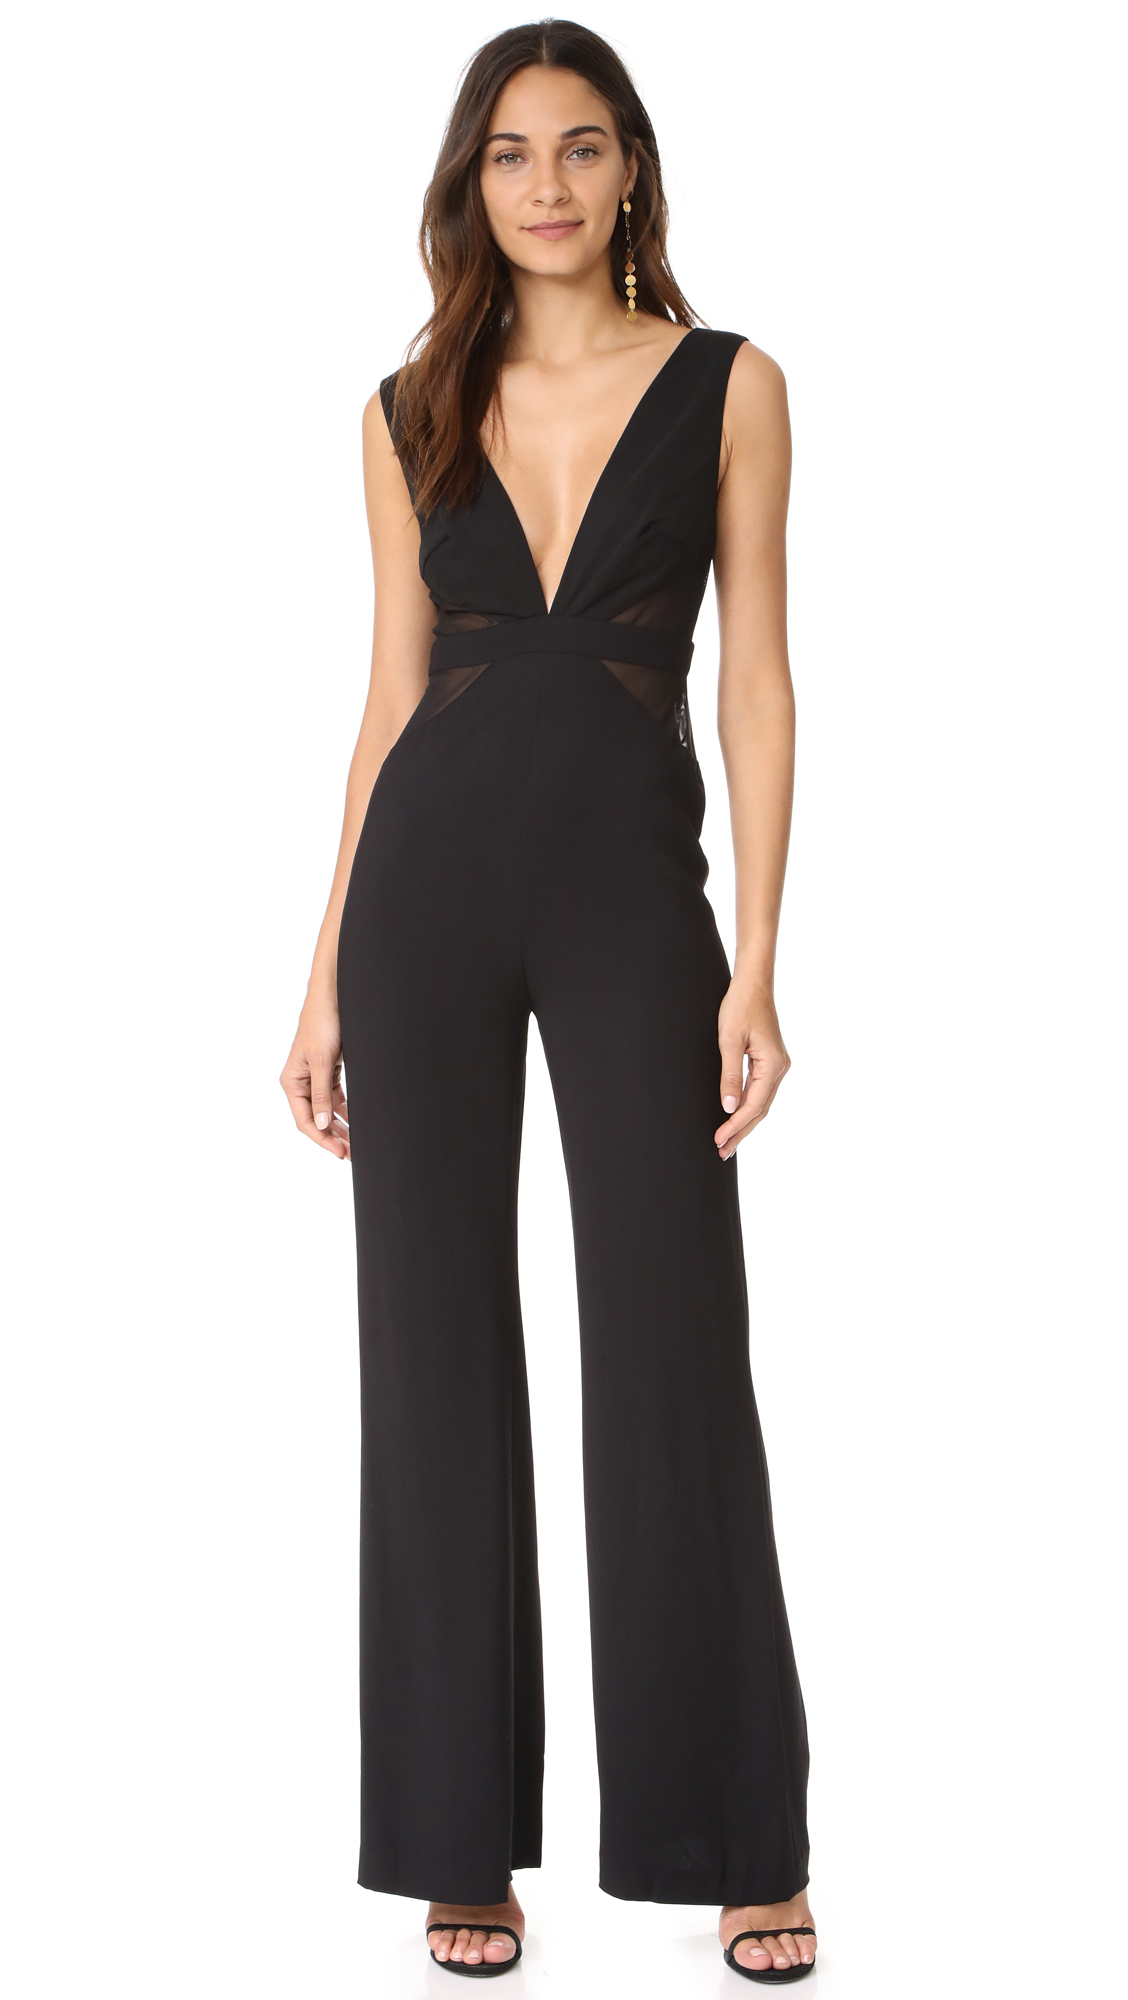 Talulah Staccato Contrast Jumpsuit - Black